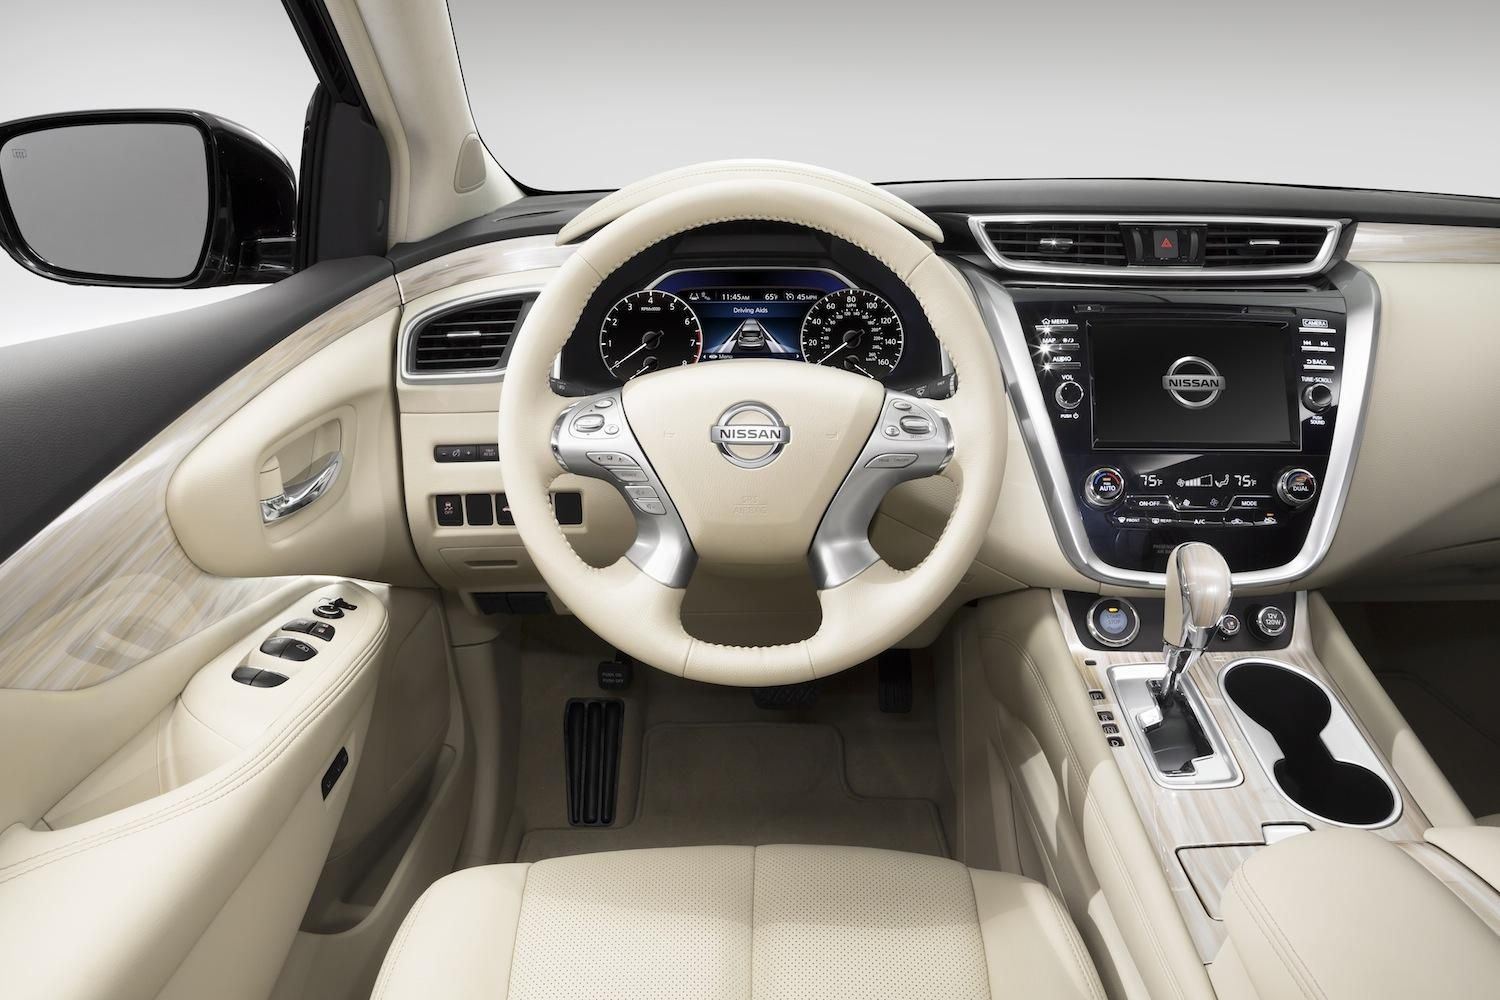 Amzing Interior Shot Of The 2017 Nissan Murano Reminds Me Toyota With Its Eship Like Inside